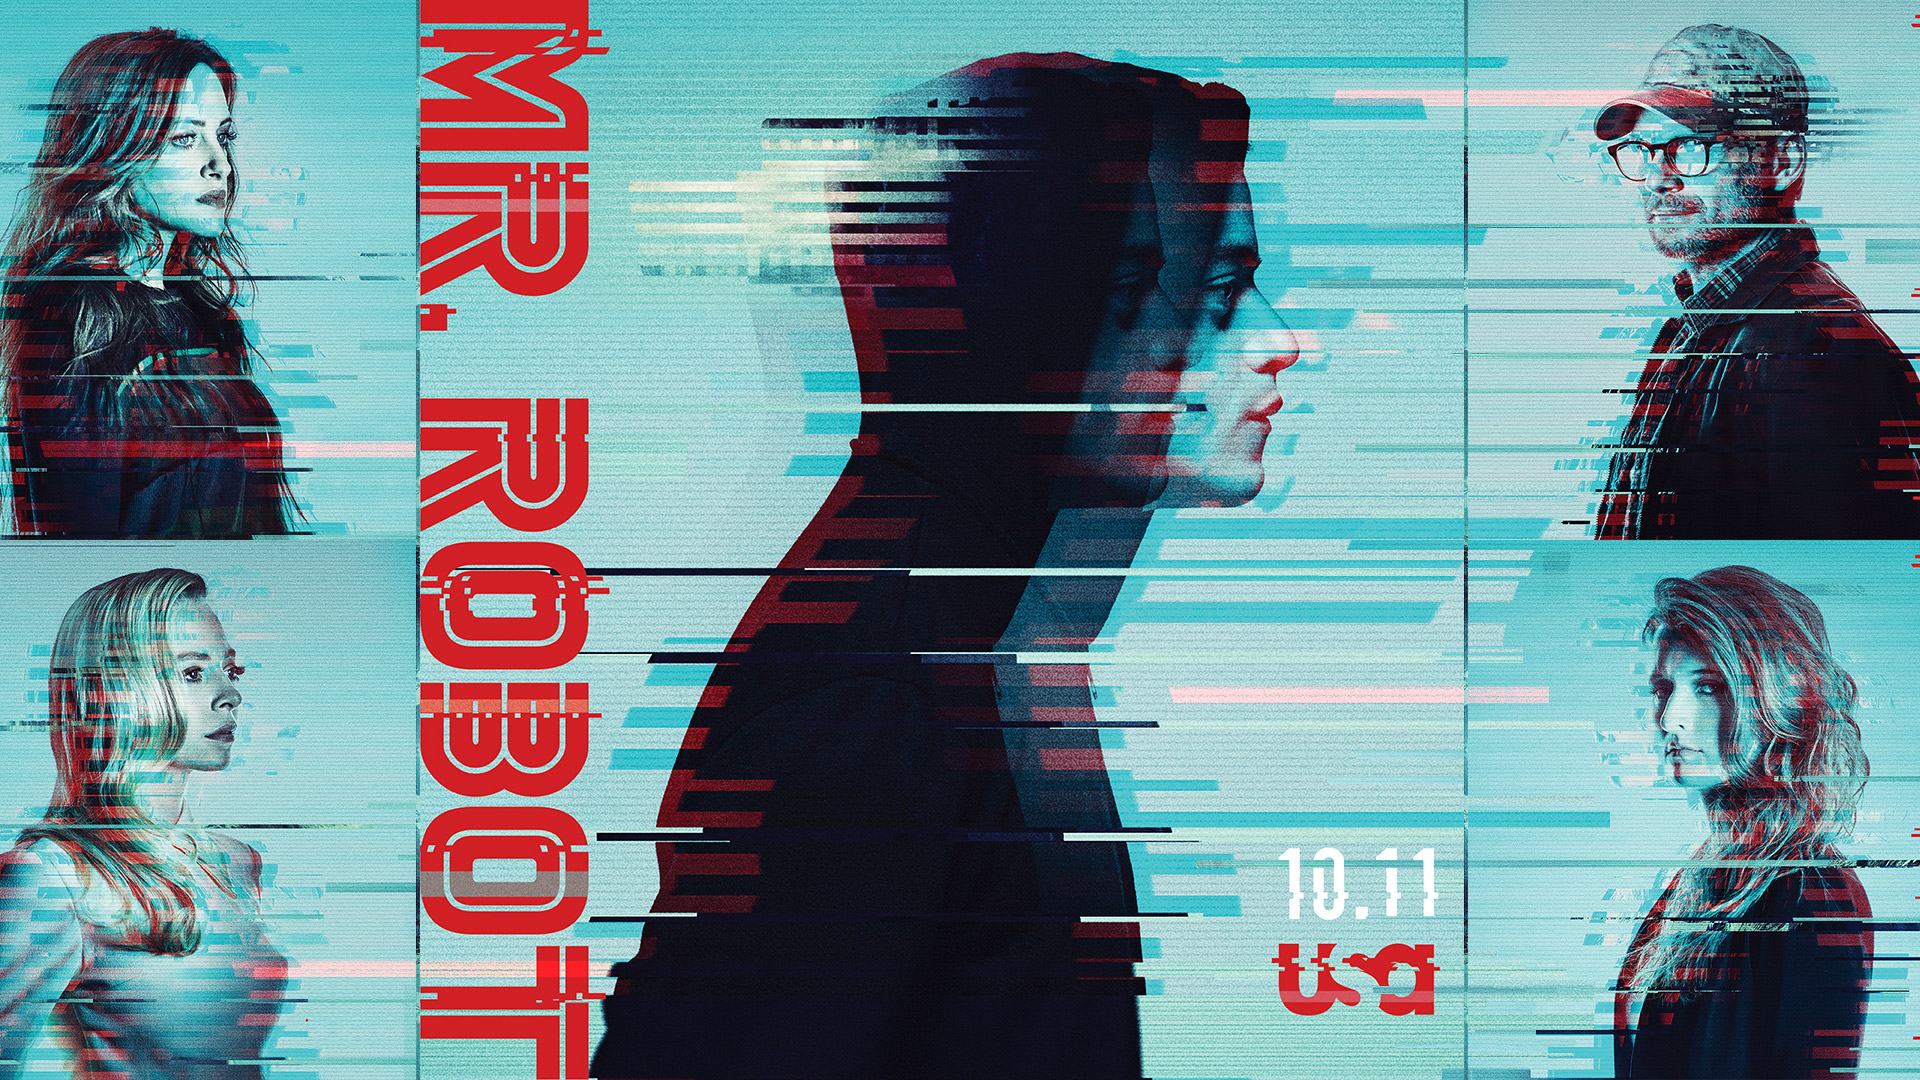 1920x1200 Mr Robot Season 3 1200p Wallpaper Hd Tv Series 4k